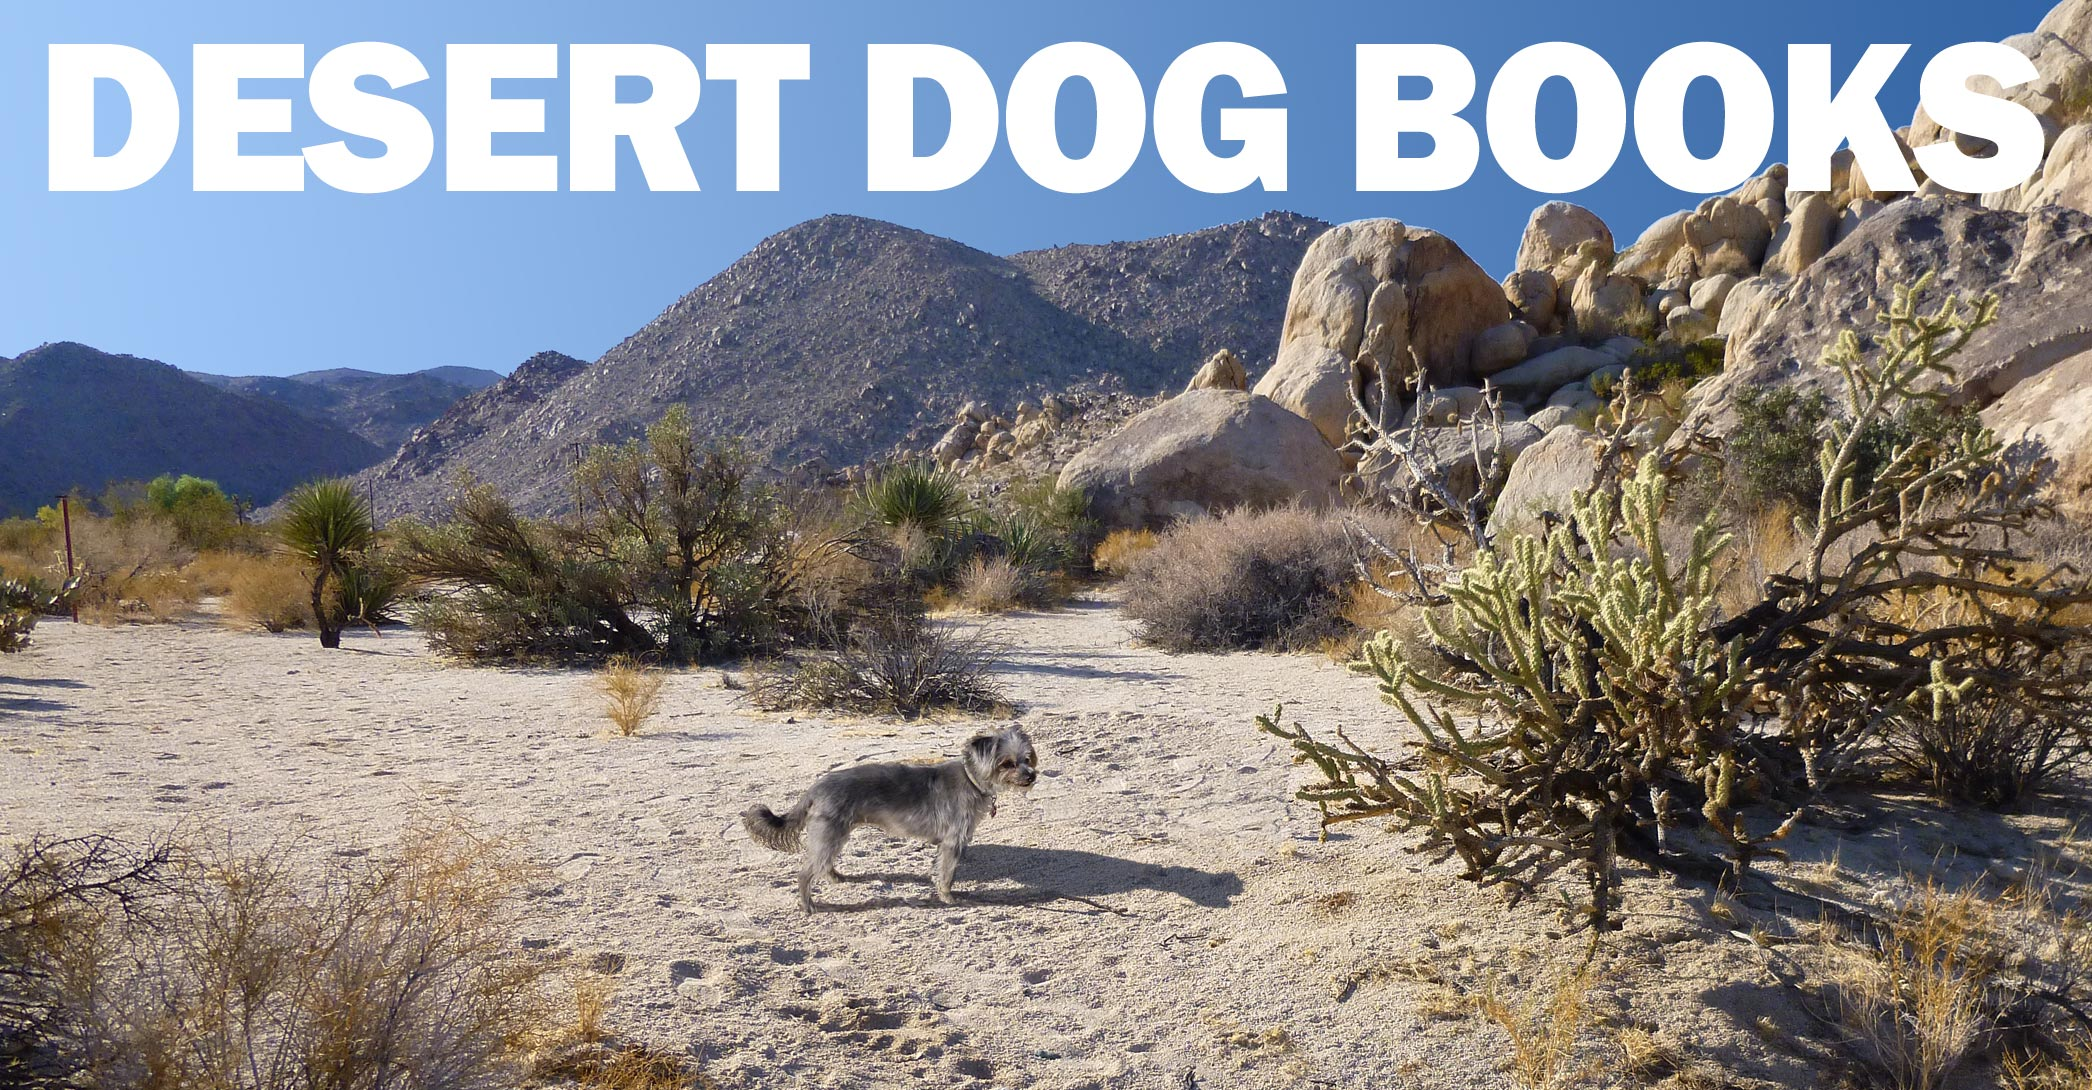 Desert Dog Books